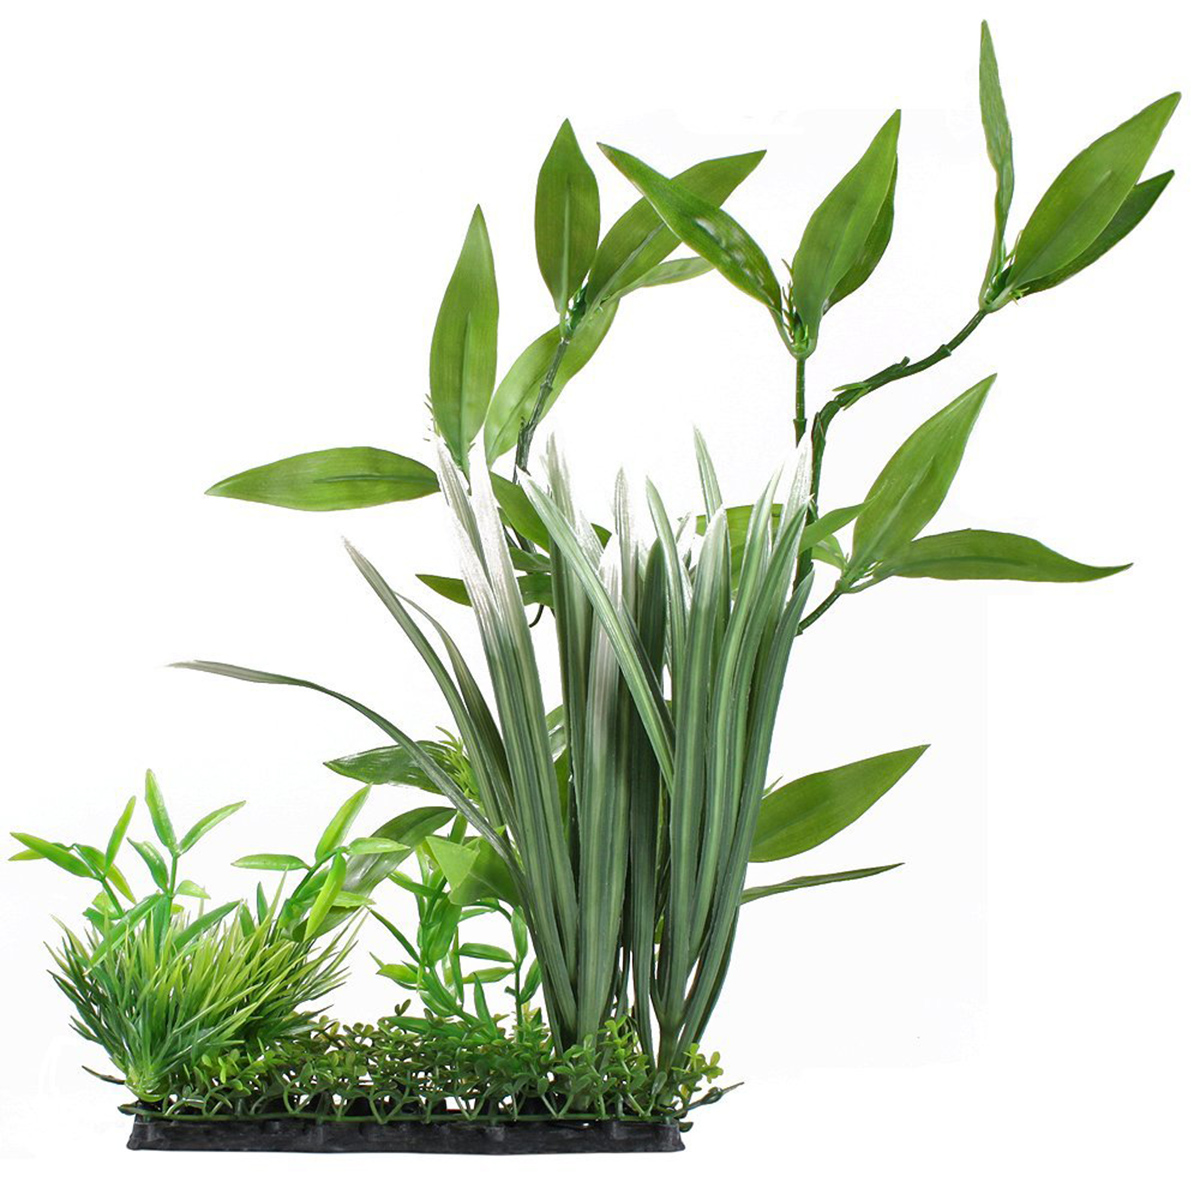 Aquarium Ornament Fish Tank Plastic Underwater Plant Green Grass Leaves For Home Office Saltwater Freshwater Tropical(China (Mainland))